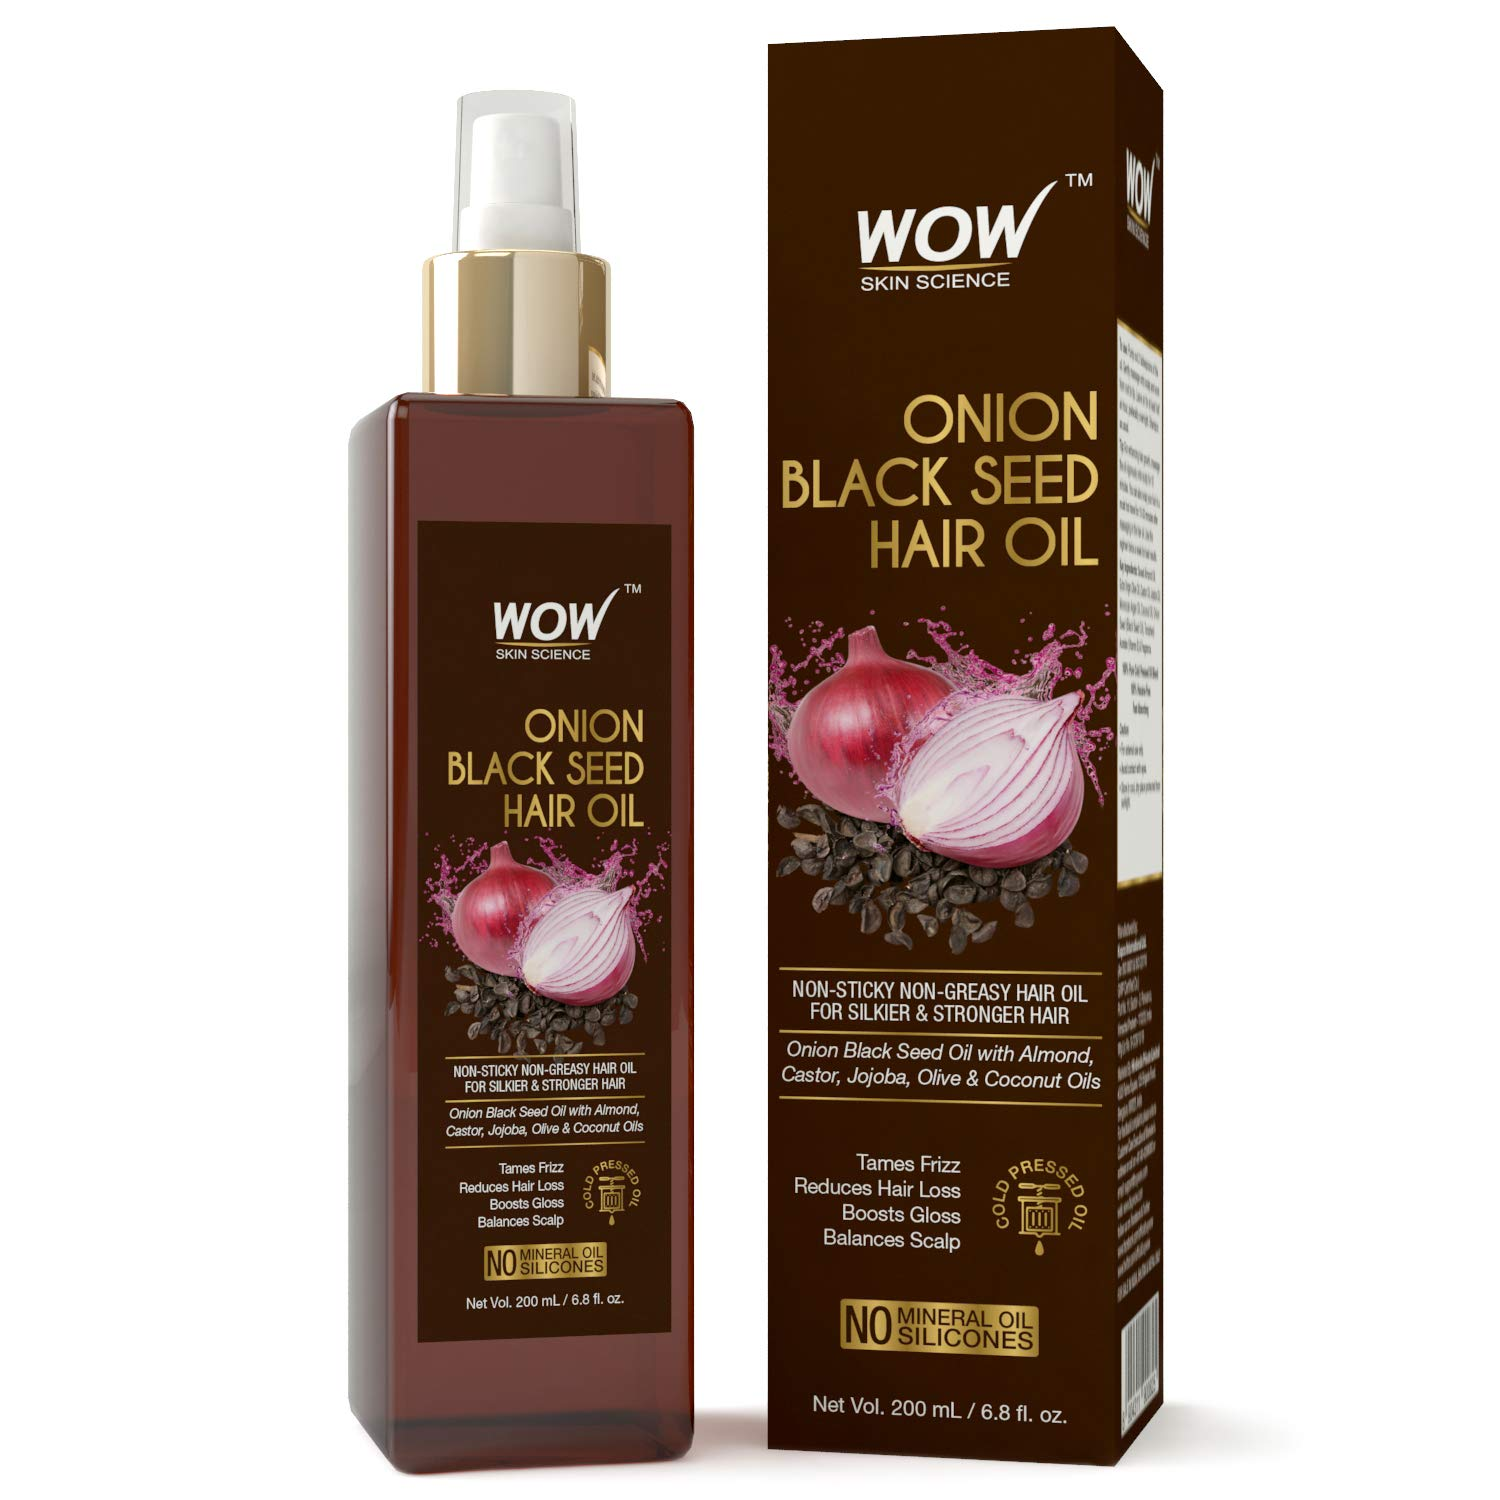 WOW Onion Black Seed Hair Oil - Promotes Hair Growth - Controls Hair Fall - No Mineral Oil & Silicones - 200mL